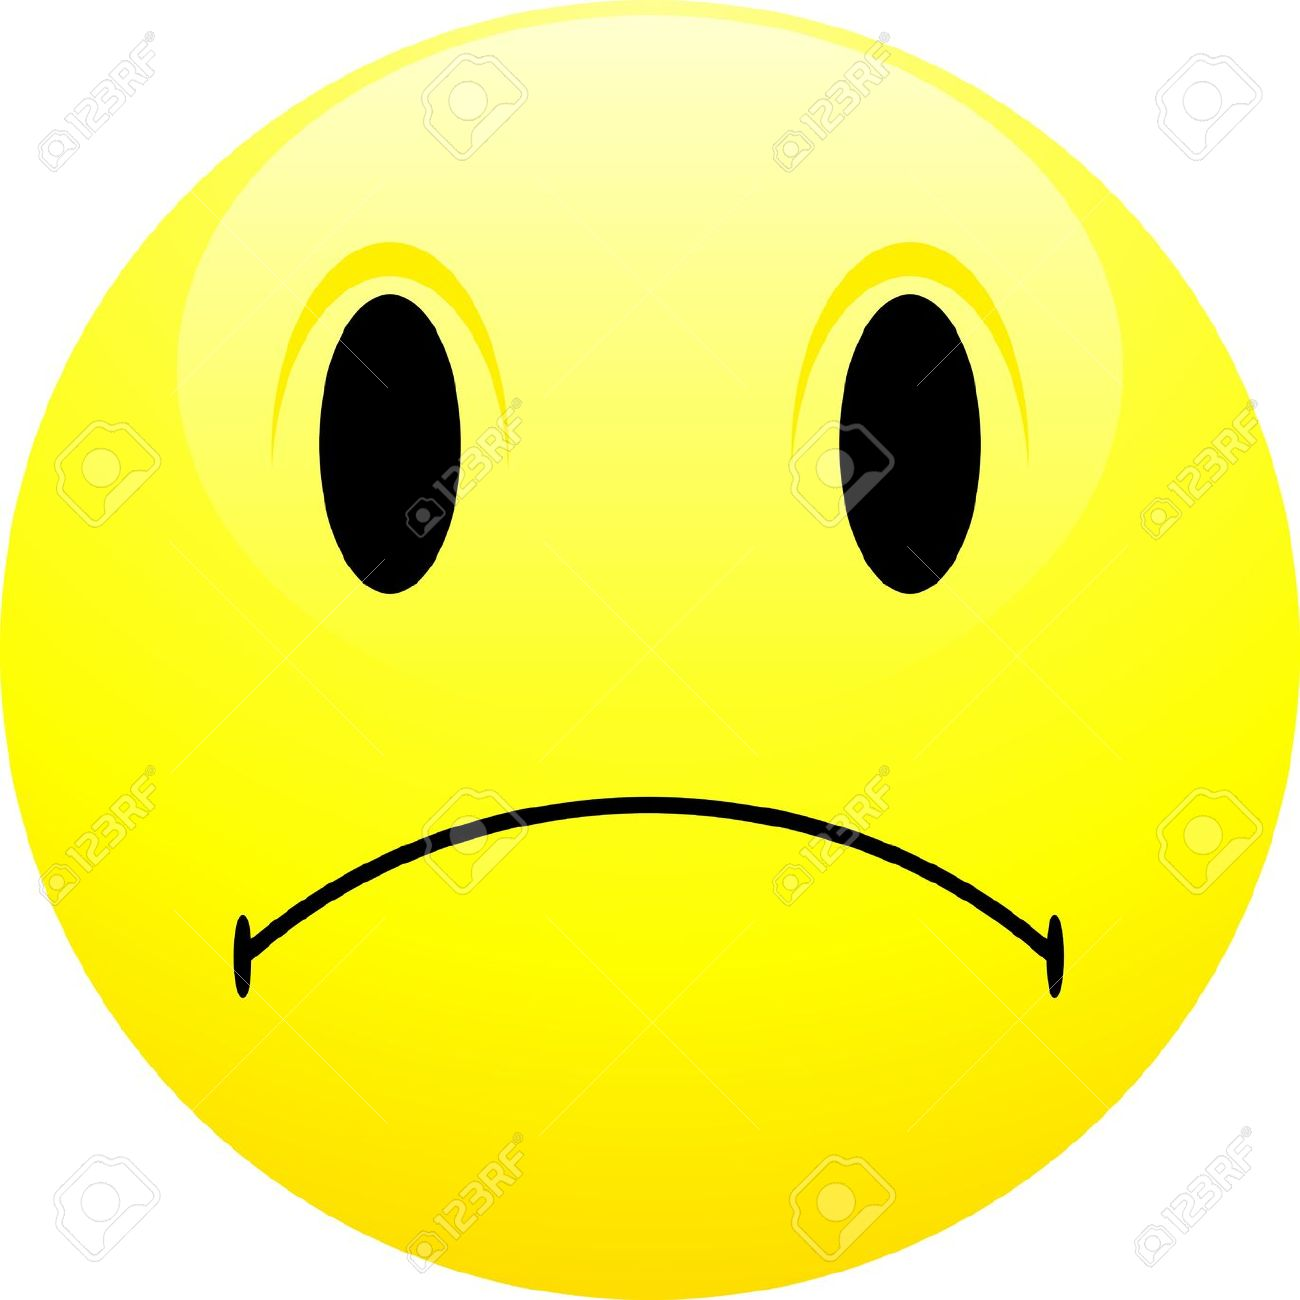 Sad smiley face free download best sad smiley face on clipartmag 1300x1300 sadness clipart sad smiley buycottarizona Choice Image